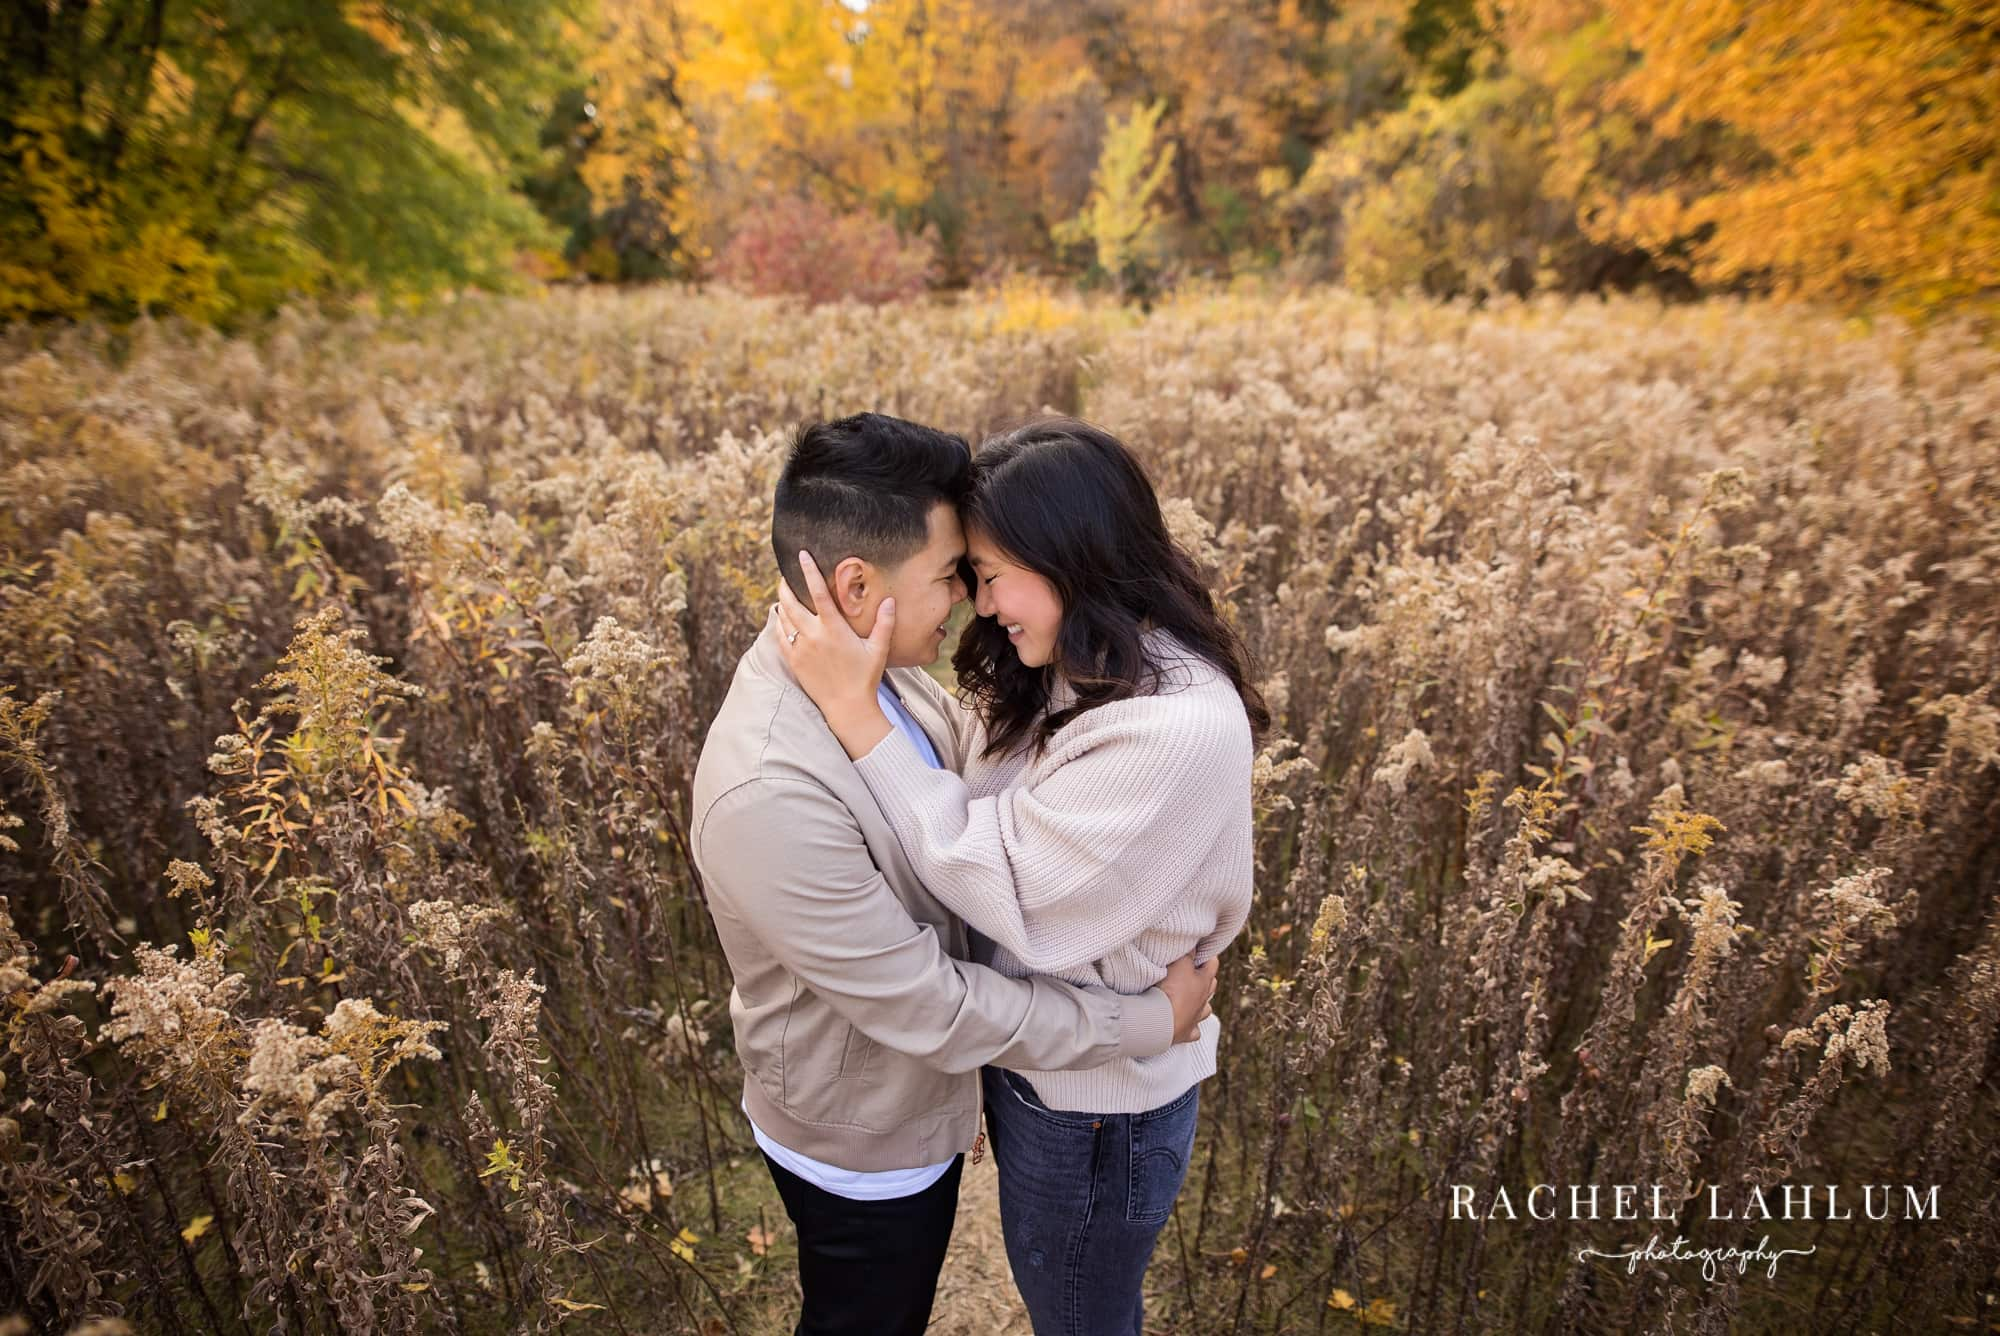 Autumn engagement session in wildflower field at Longfellow Gardens - South Minneapolis.